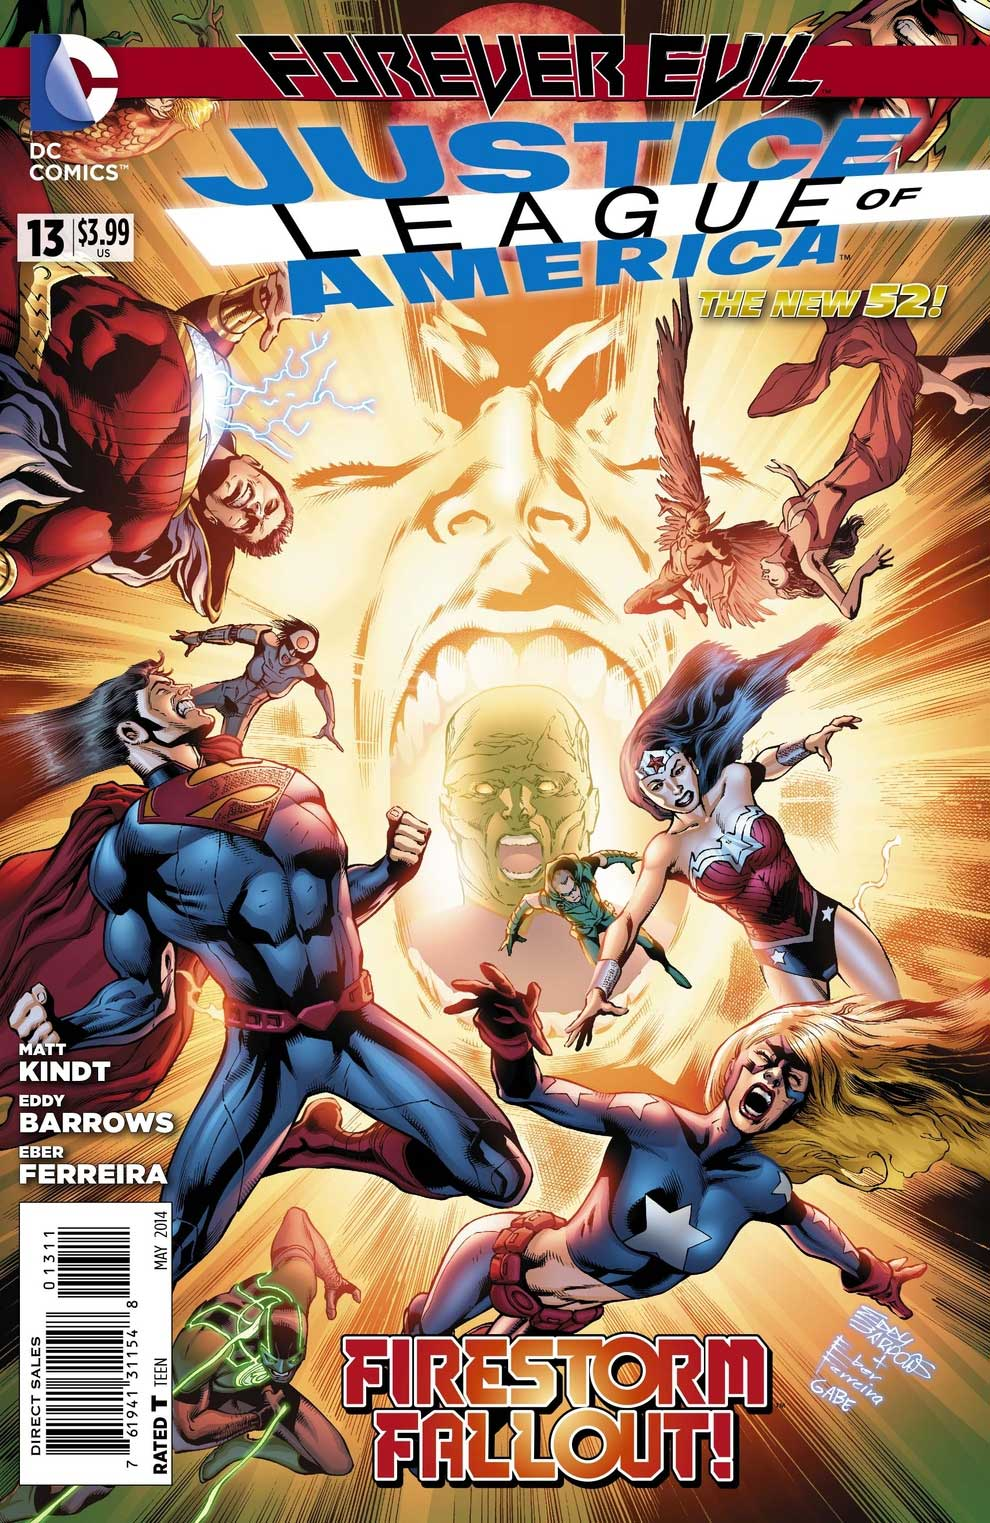 Justice League of America #13 cover by Eddy Barrows and Eber Ferreira